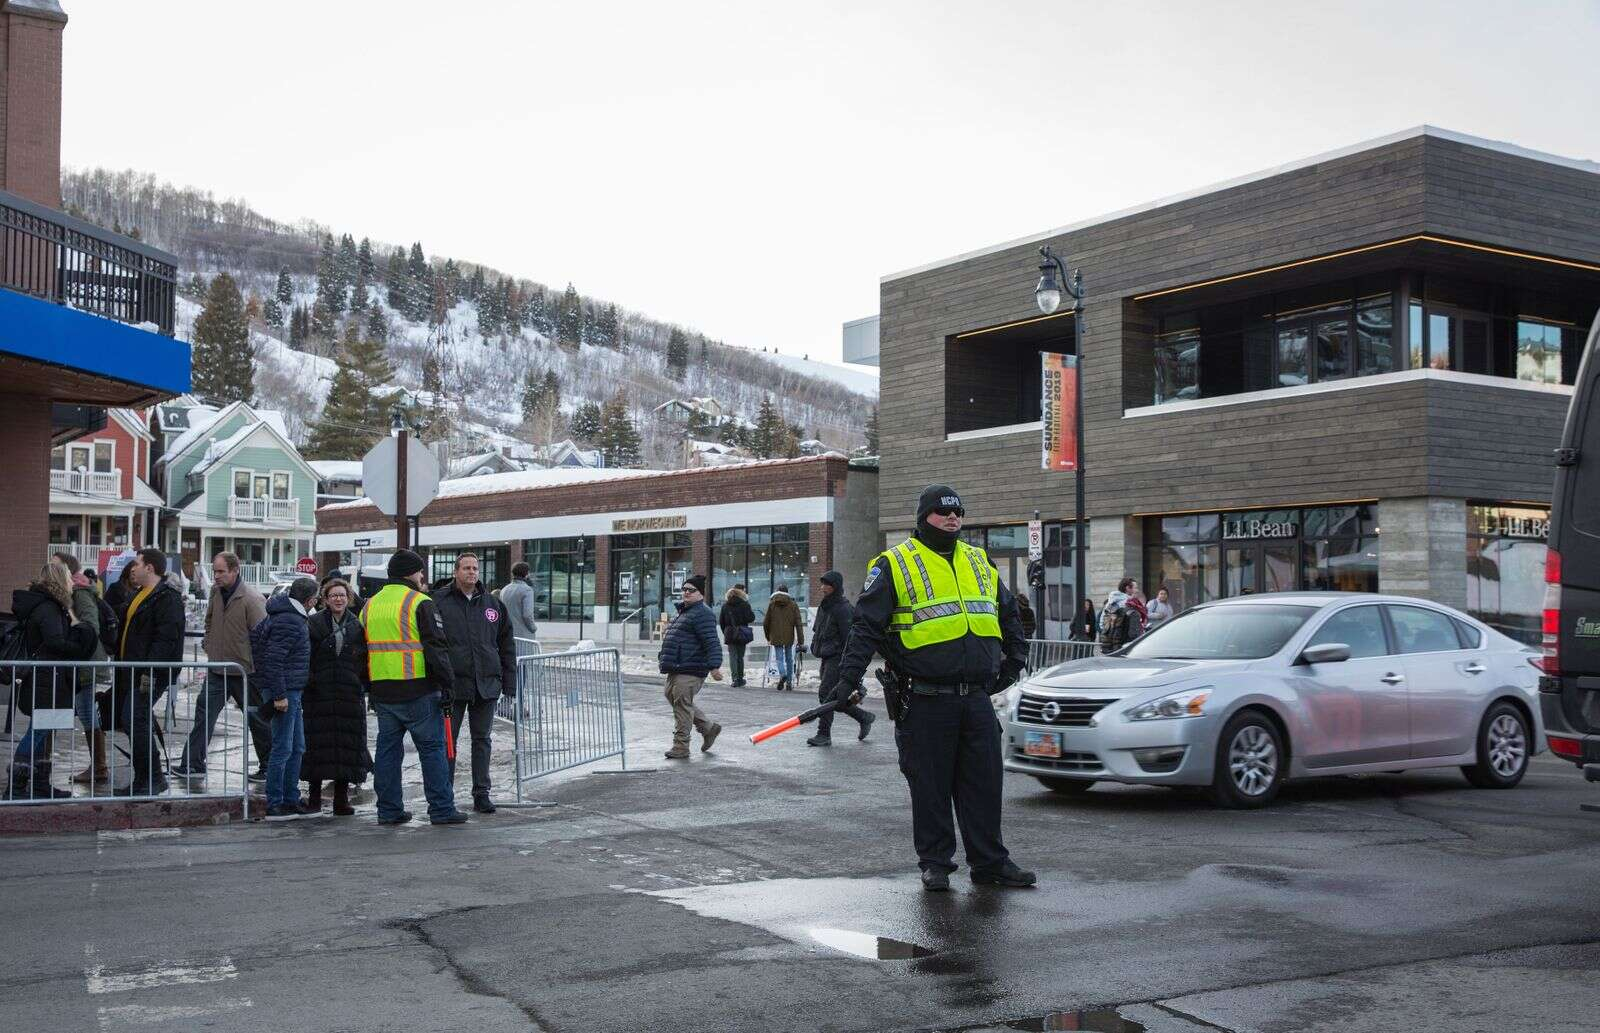 Sundance 2021 policing: no movie stars needing help, no demonstrators and few traffic issues